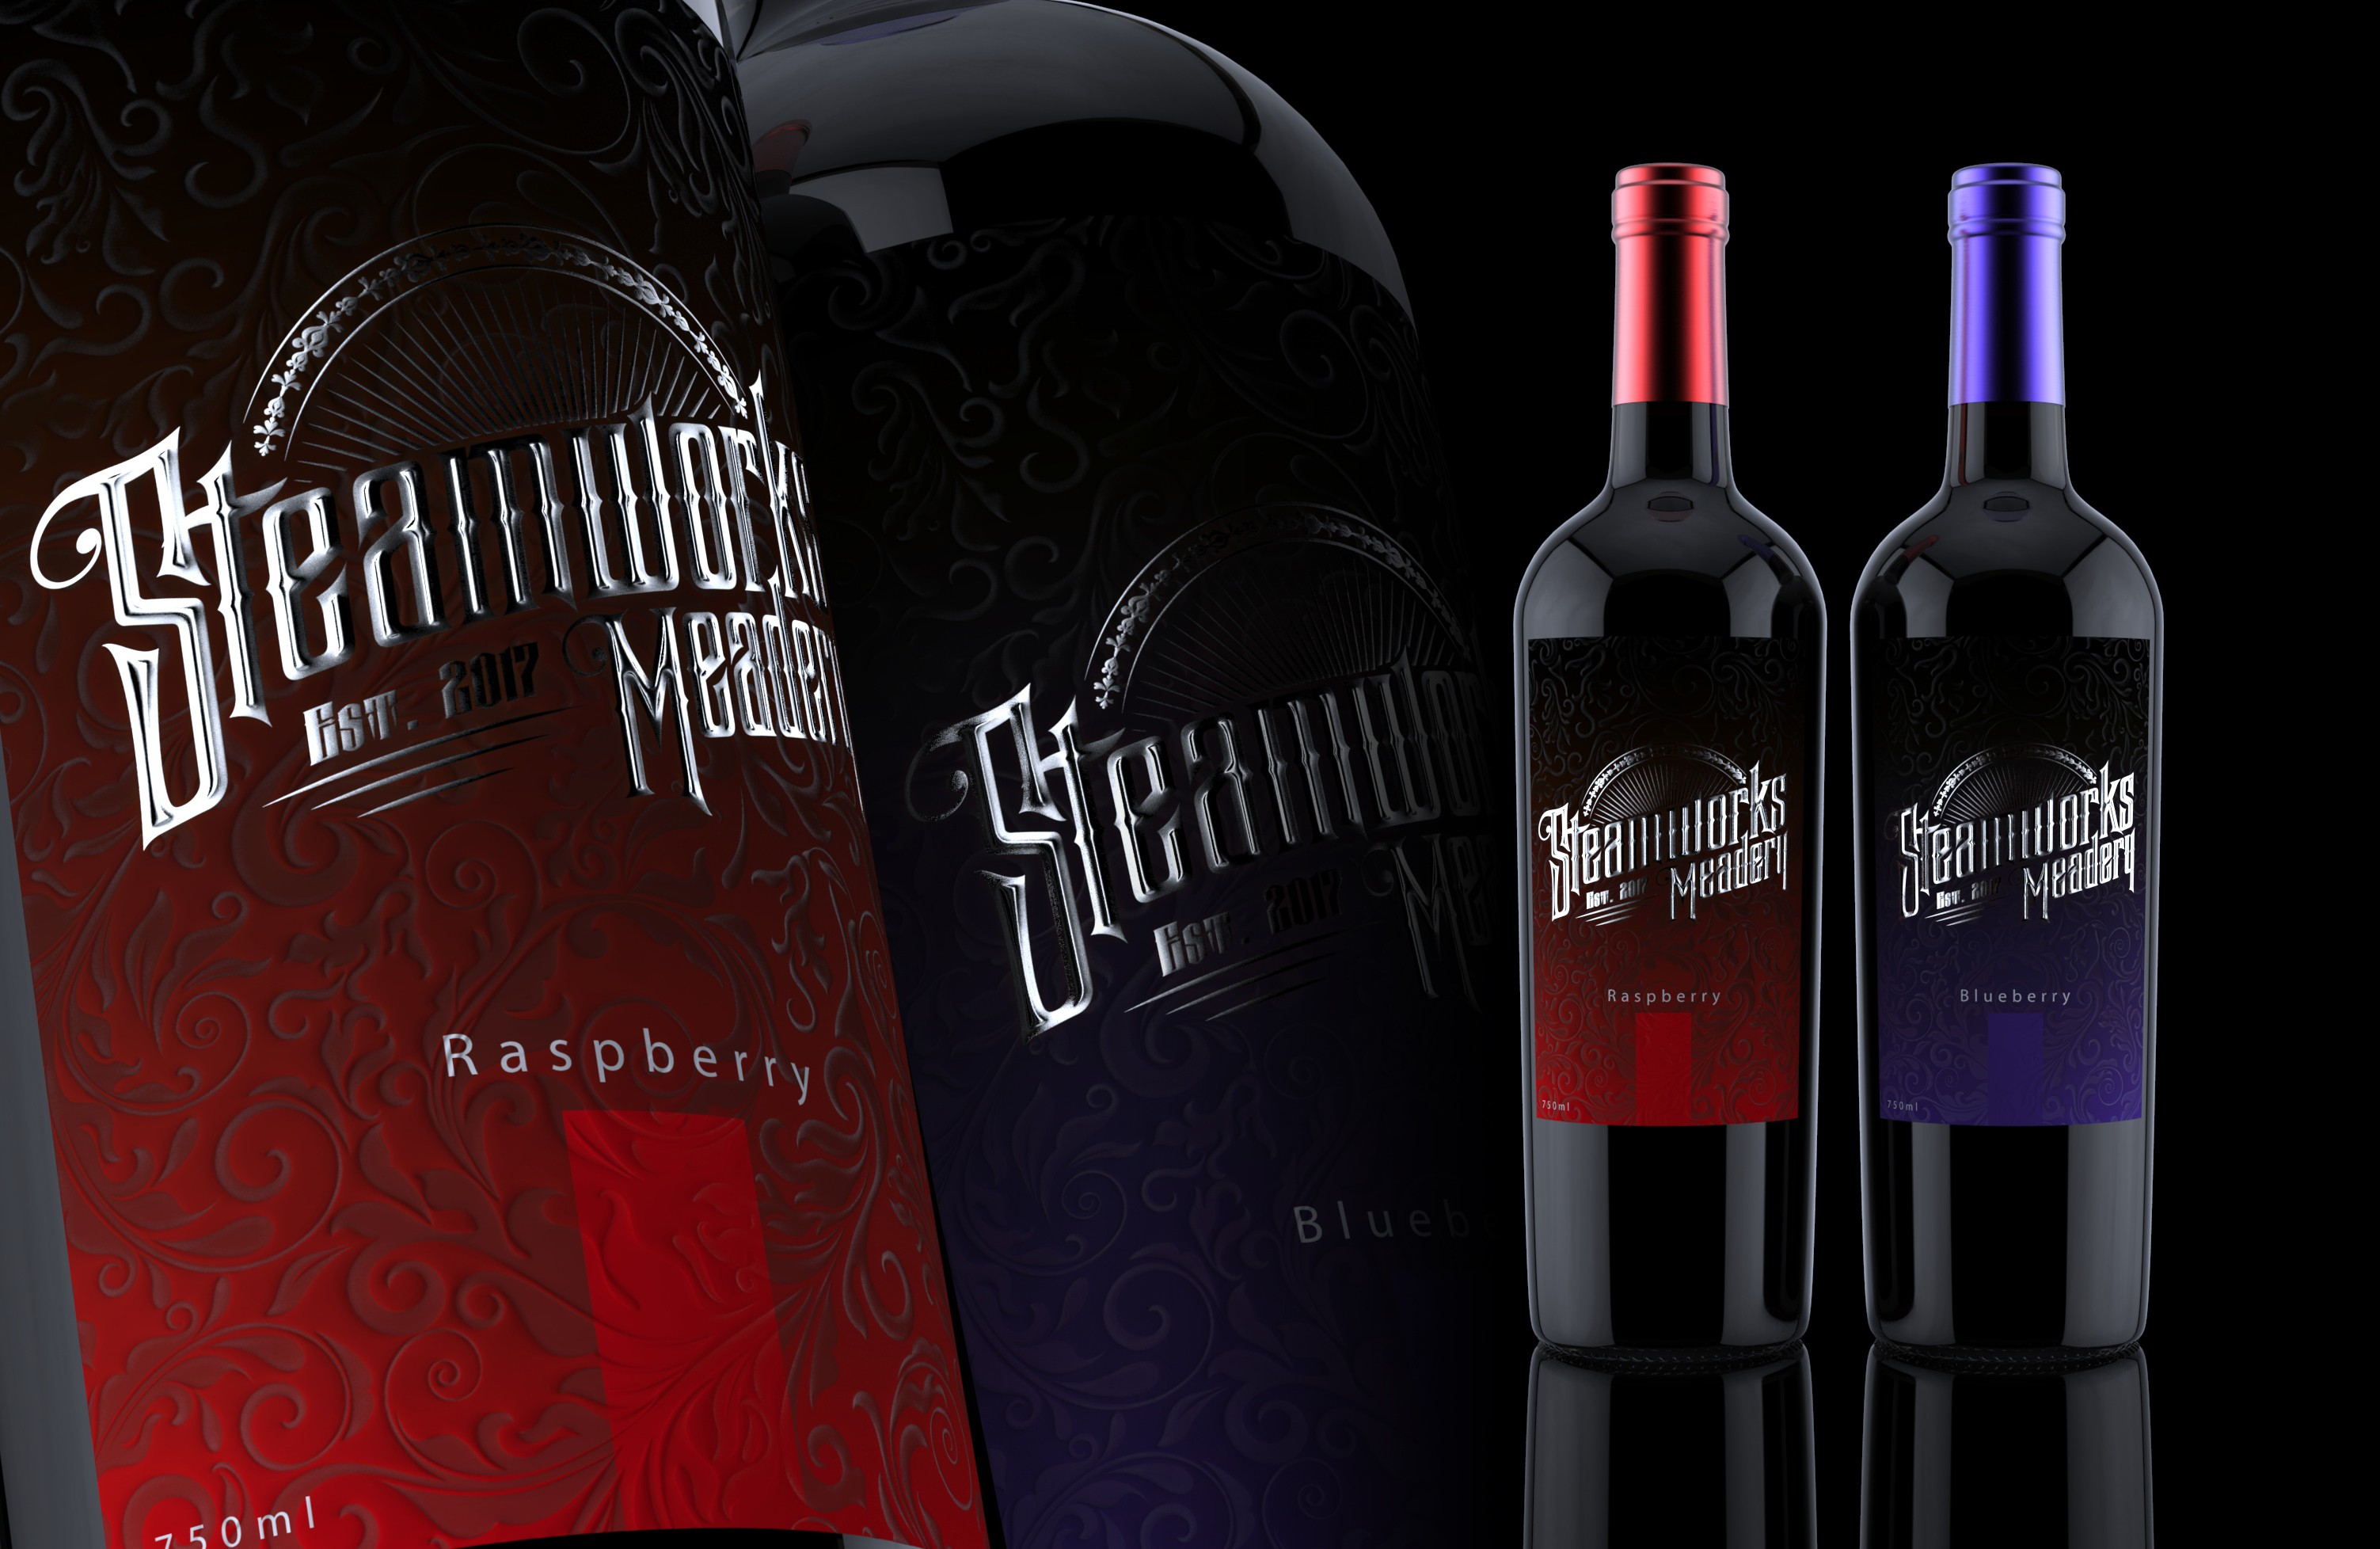 Wine label and logo design